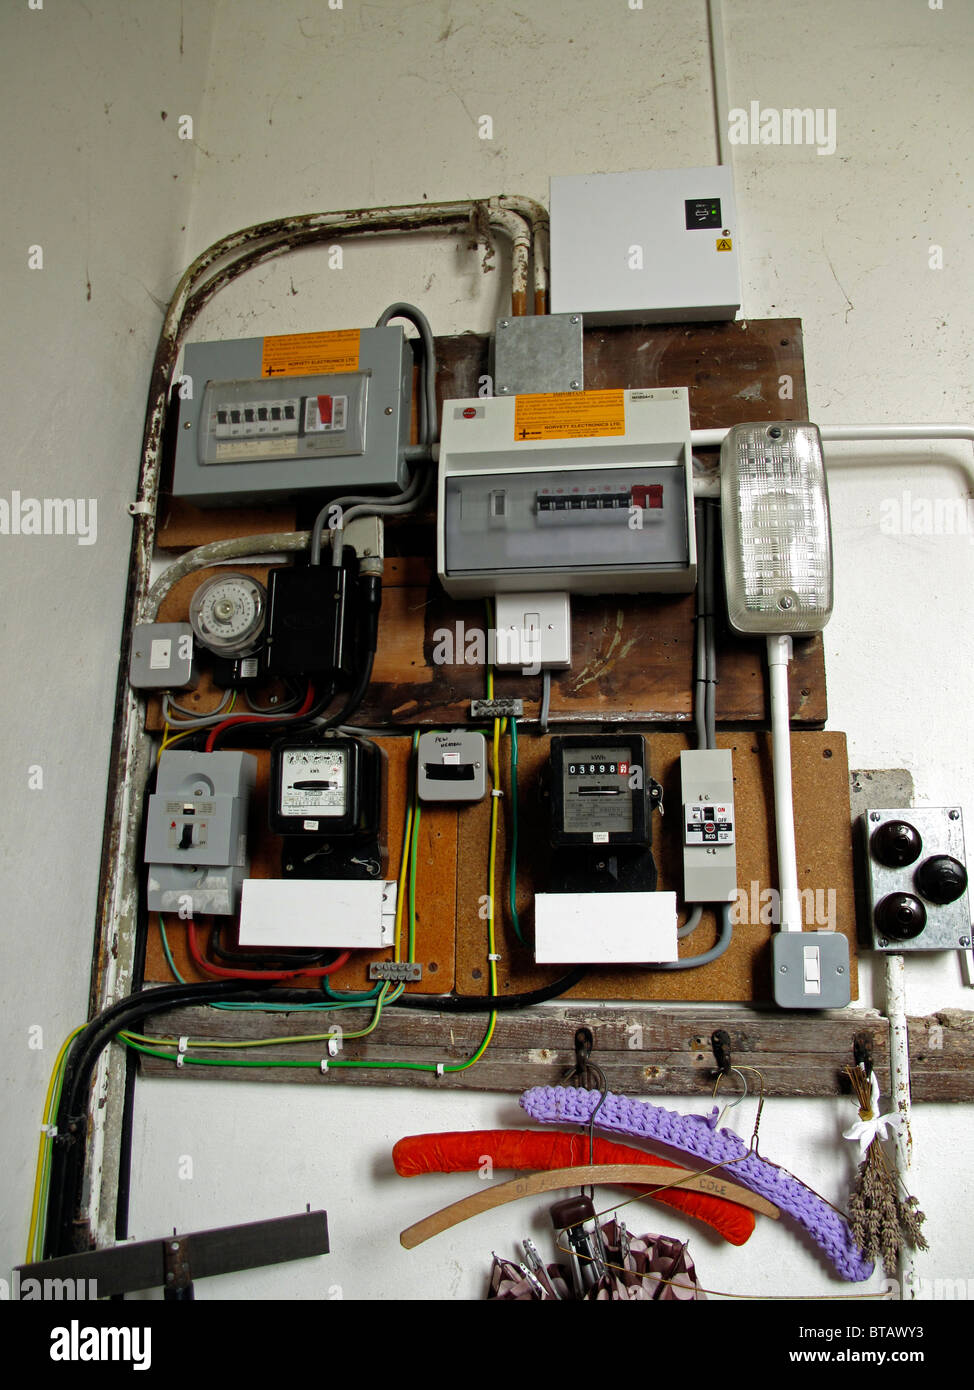 electrical supplies,switches, fuse boxes and meters stock photo Electrical Wiring Details electrical supplies,switches, fuse boxes and meters